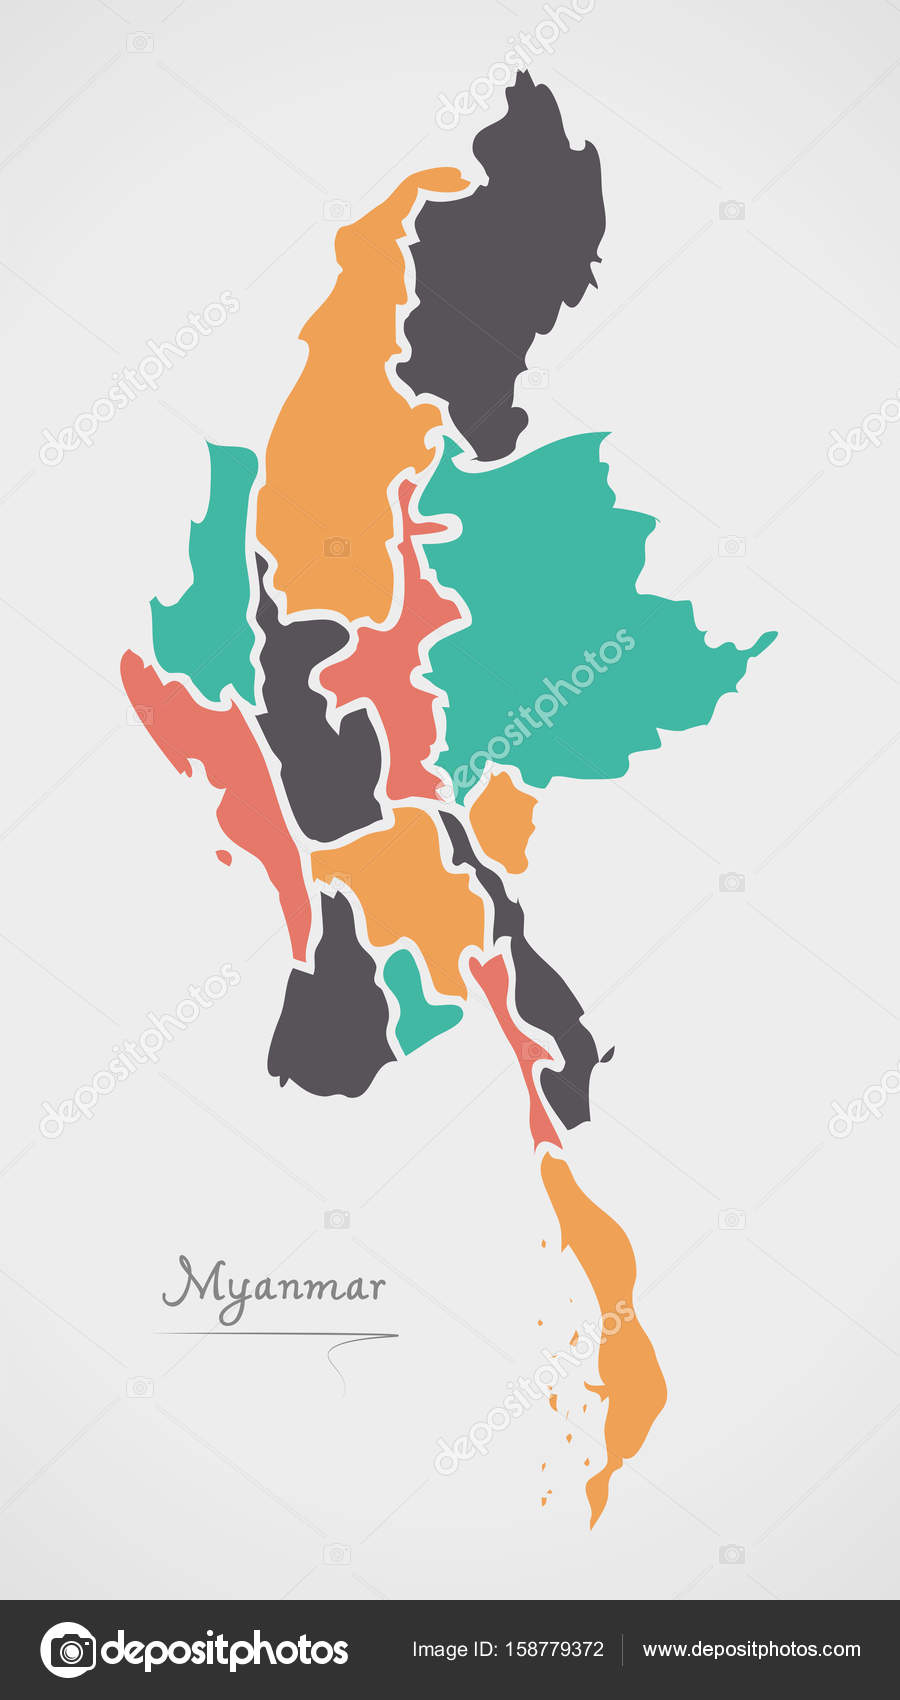 Myanmar map with states and modern round shapes stock vector myanmar map with states and modern round shapes stock vector gumiabroncs Choice Image